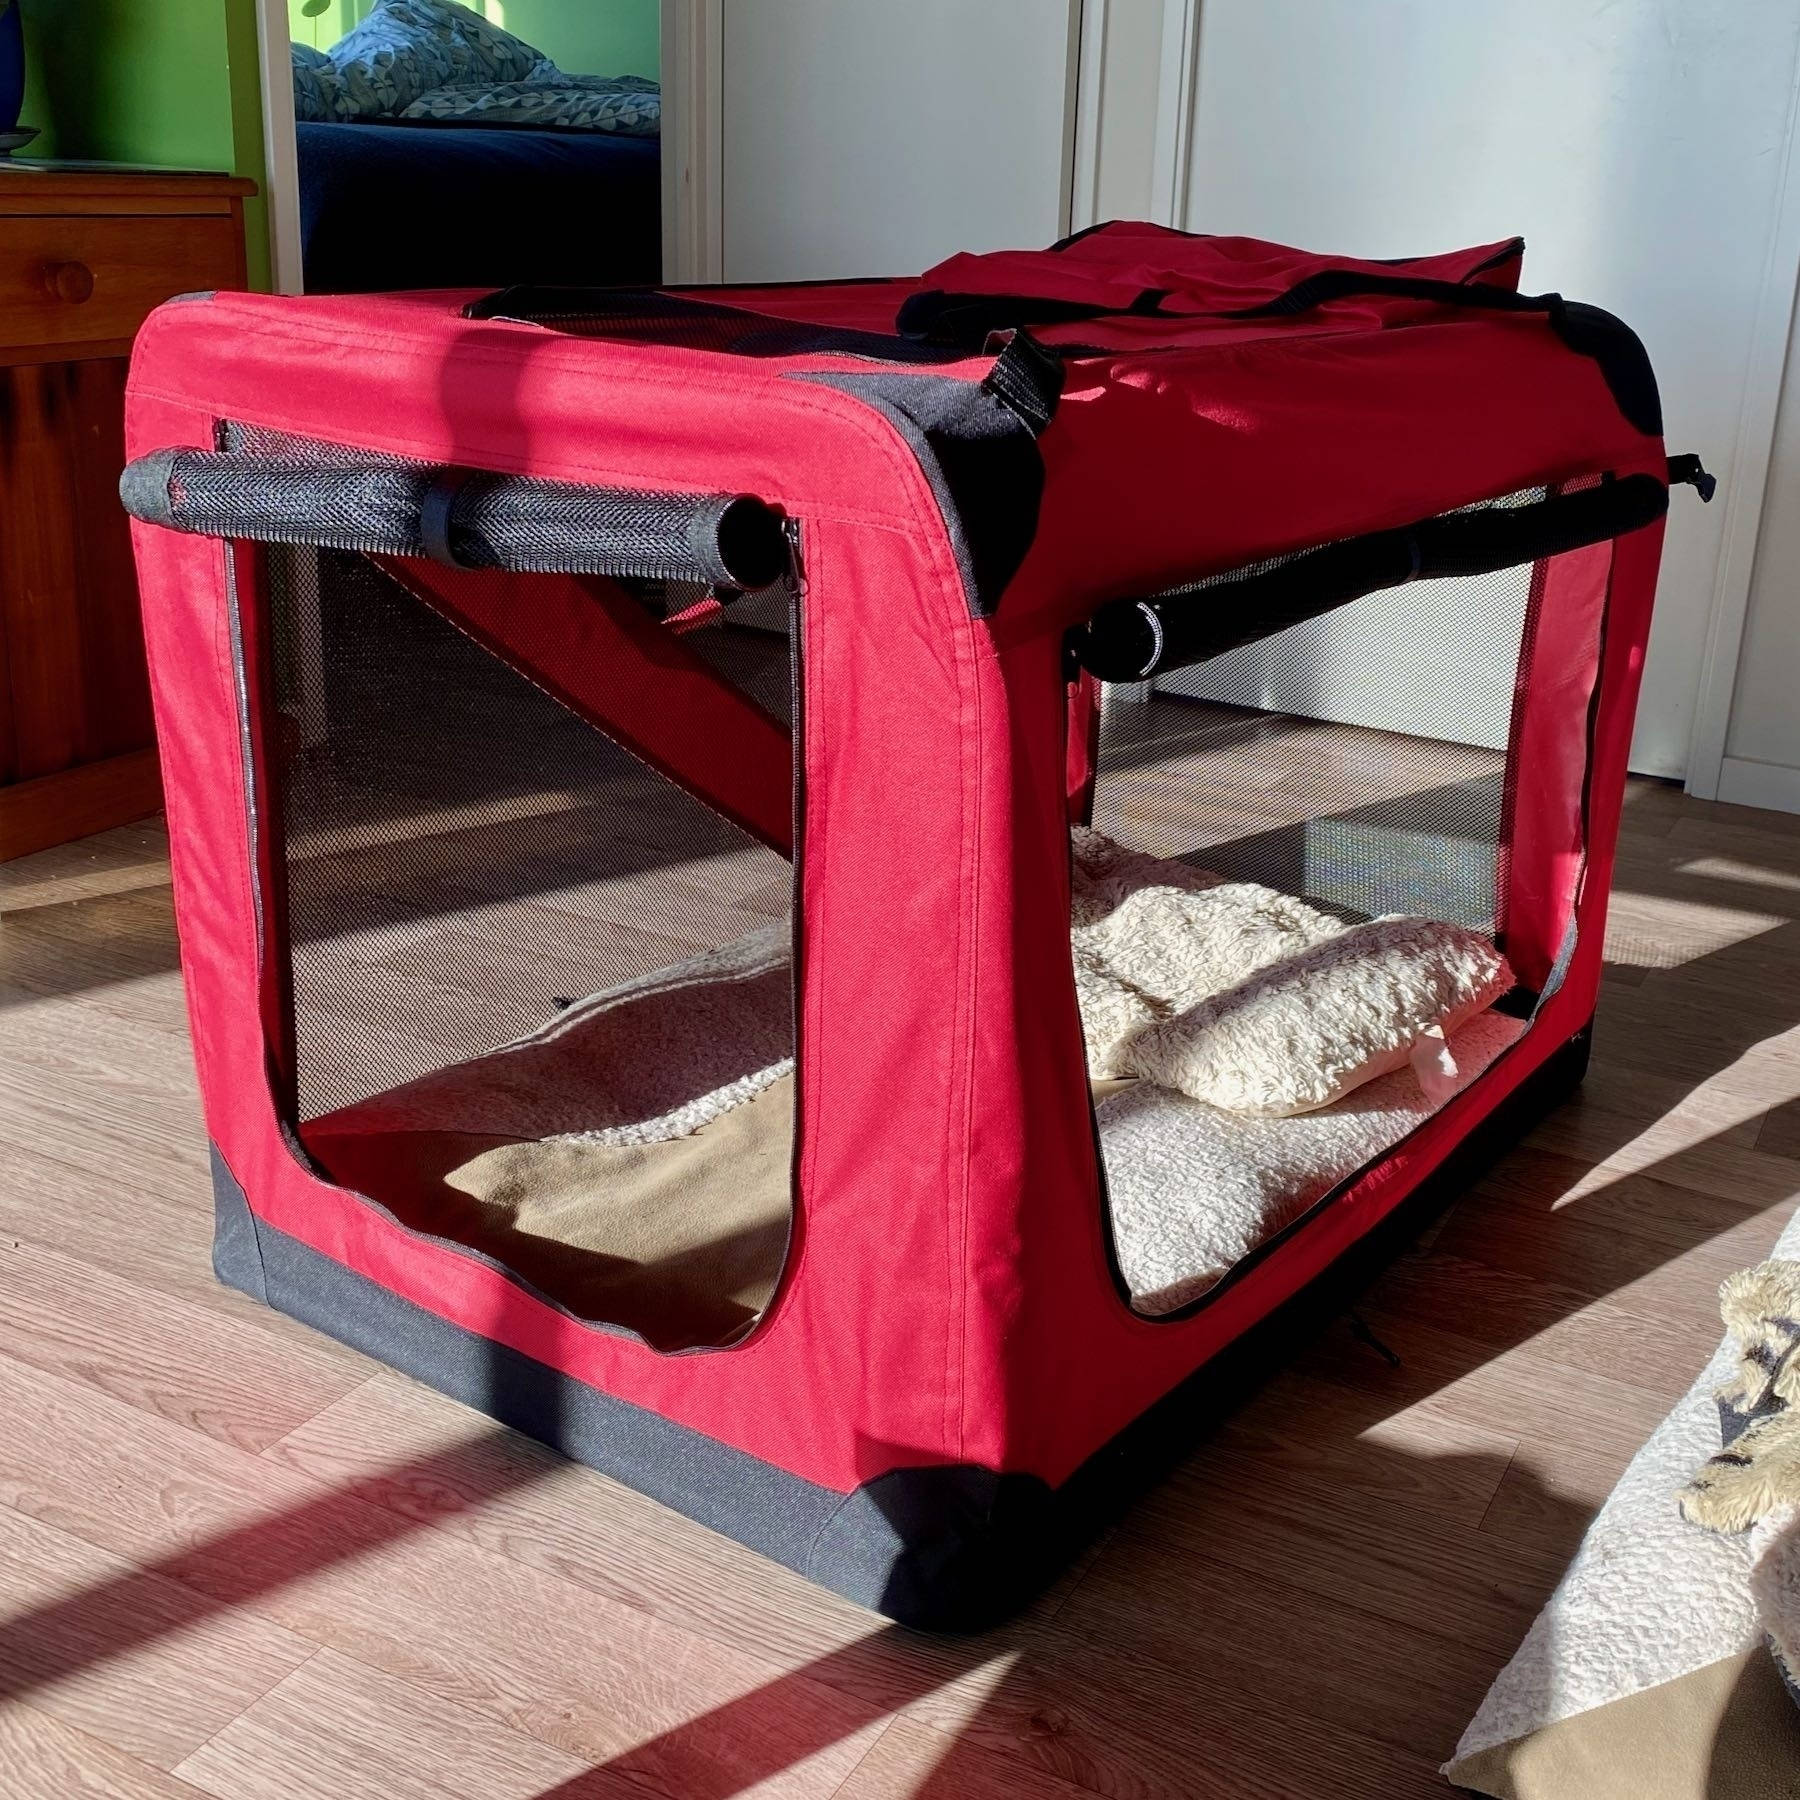 Red soft-sided dog crate.